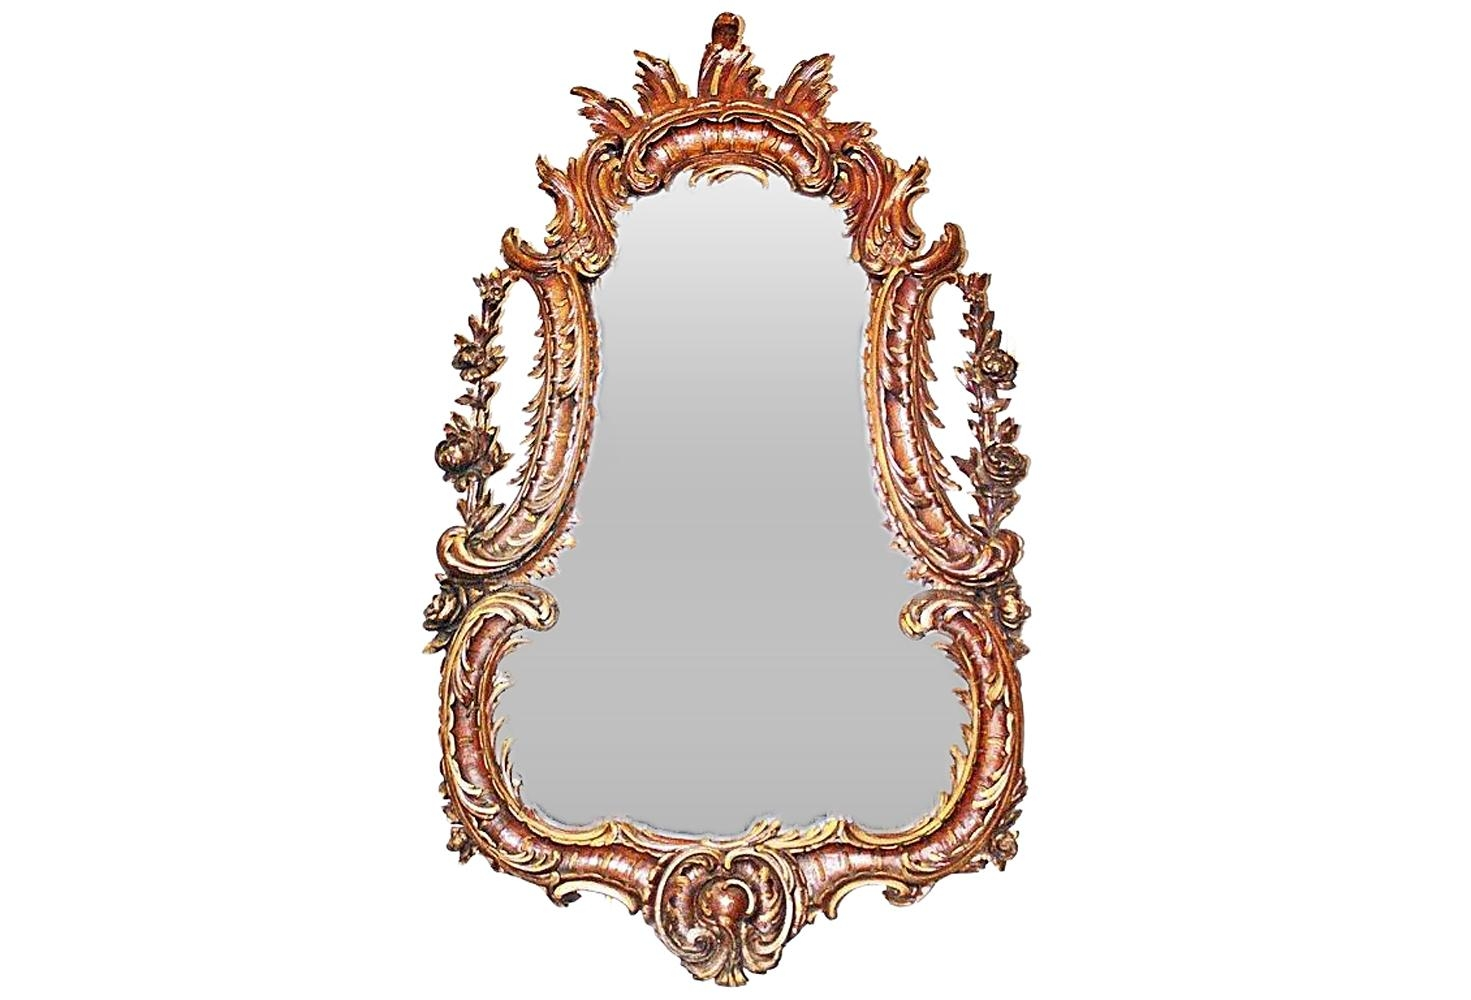 1850's Carved French Rococo Mirror | Omero Home Regarding French Rococo Mirror (Image 5 of 20)